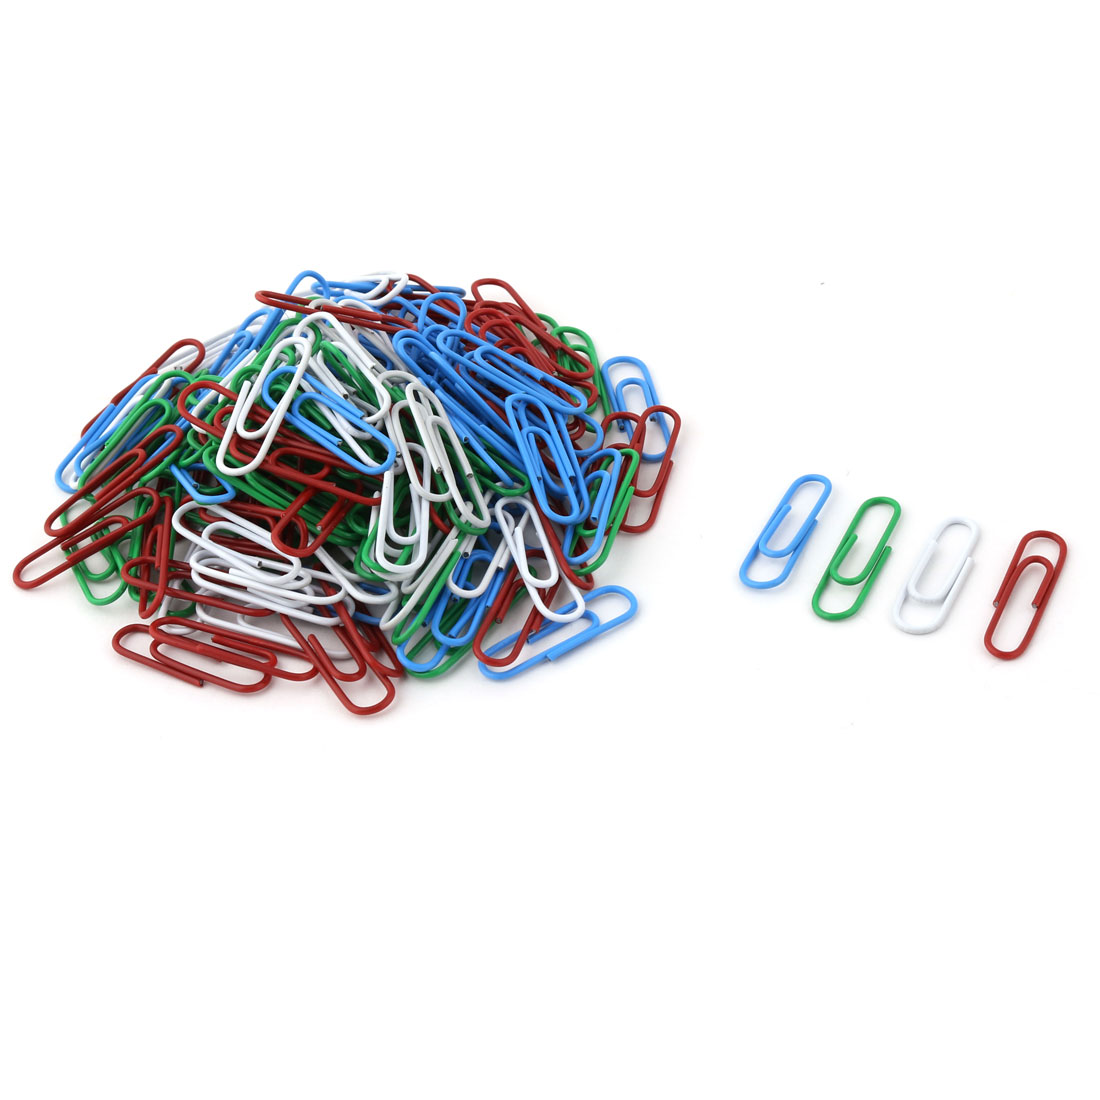 Office Home Plastic Wrapped Document Mark Paper Clip Clamps Assorted Color 164 Pcs